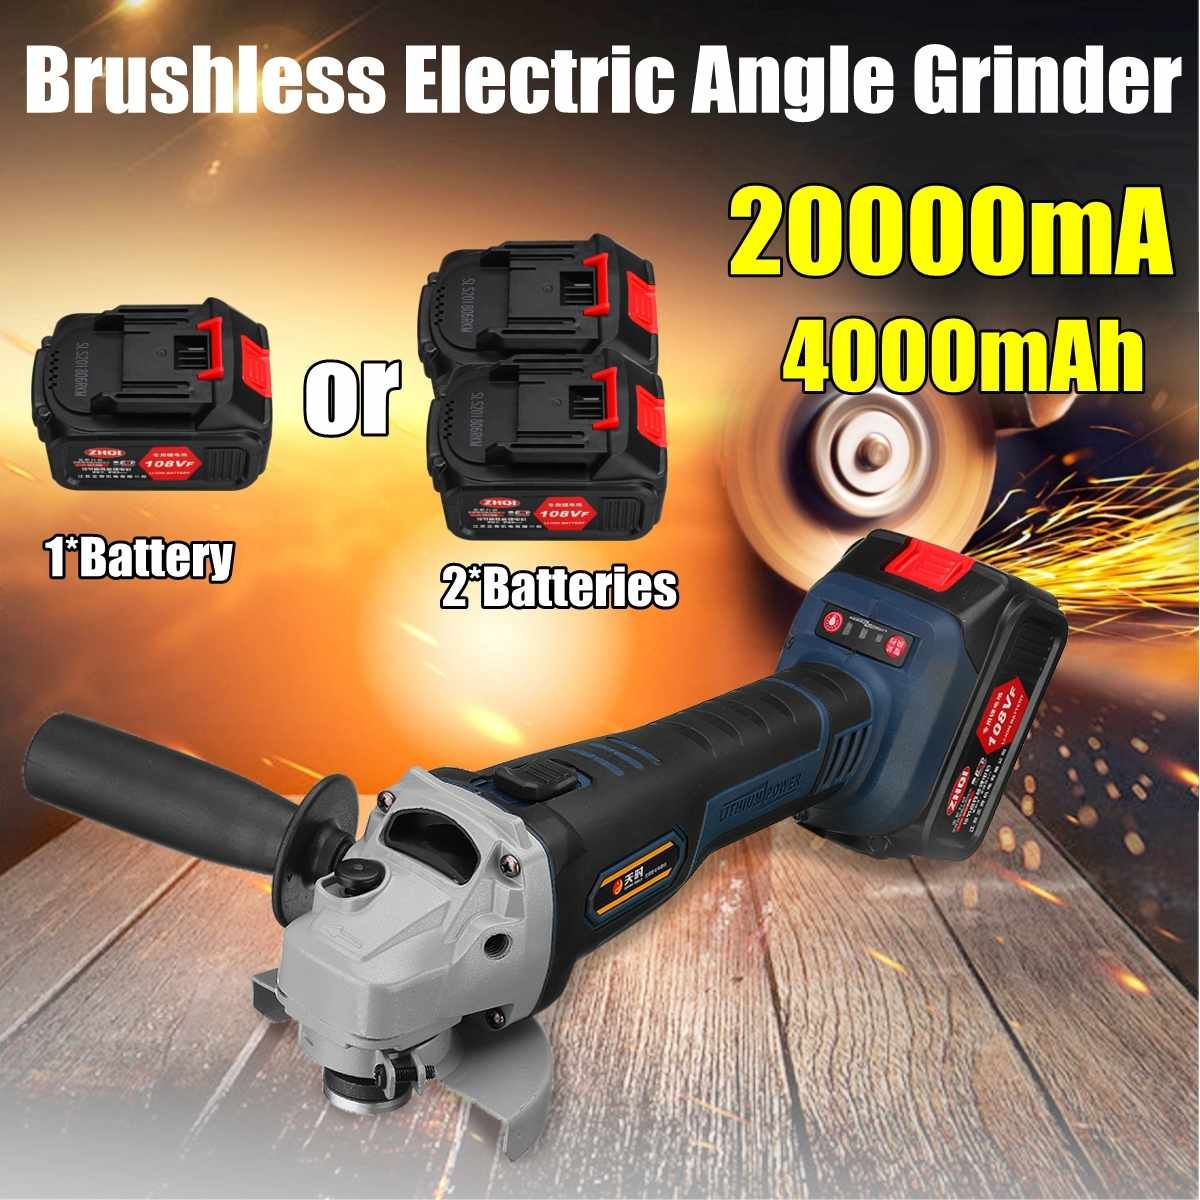 108VF 4000mah 20000mA Cordless Electric Angle Grinder Polisher 110V~220V Machine With 2 Battery WrenchTool